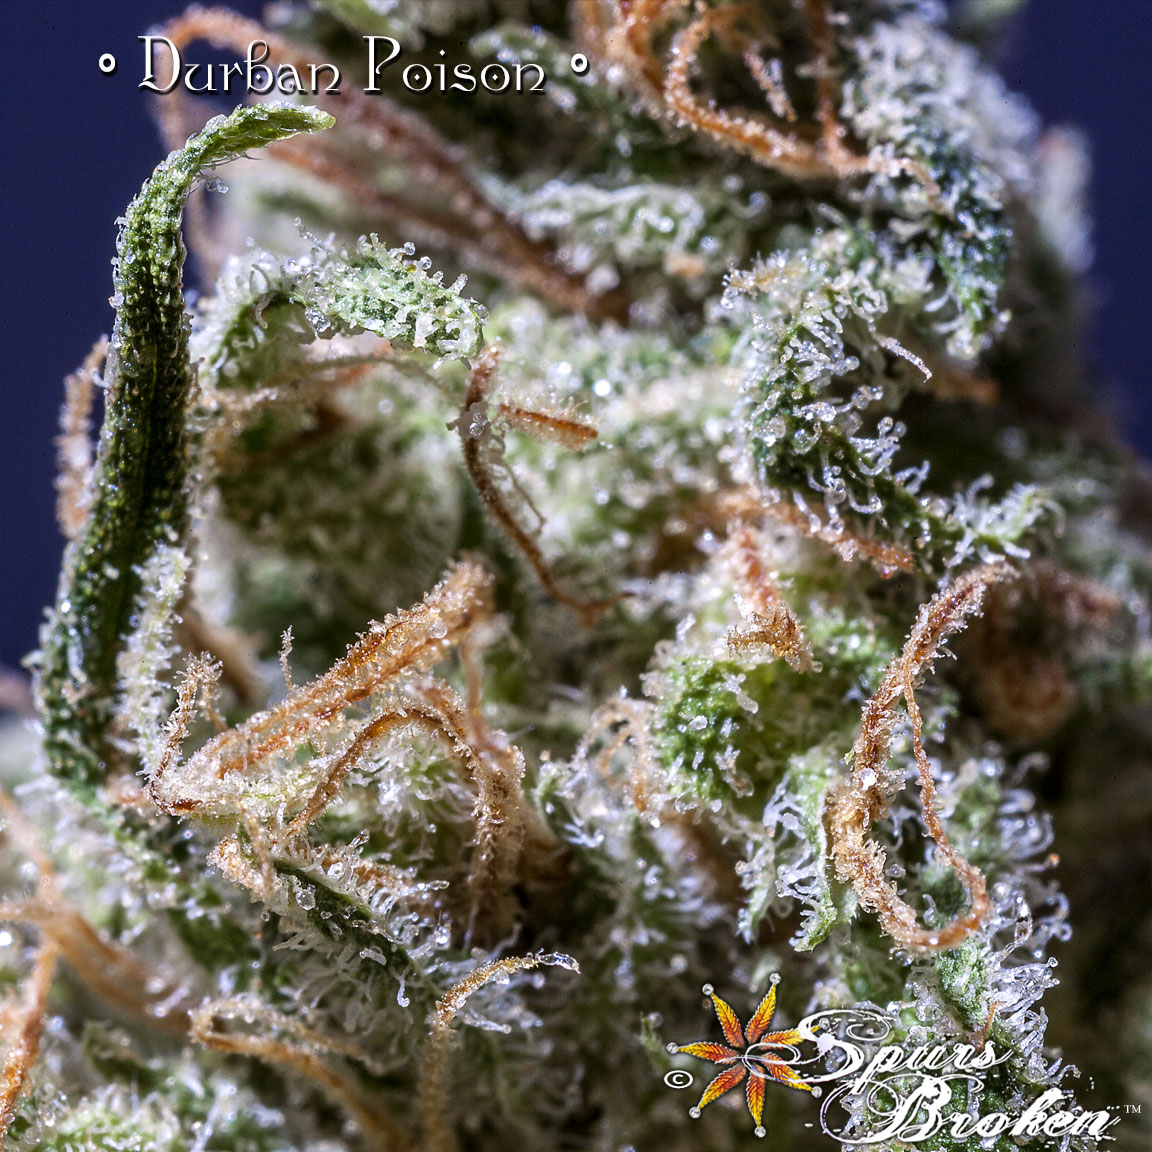 Durban Poison - Cannabis Macro Photography by Spurs Broken (Robert R. Sanders)